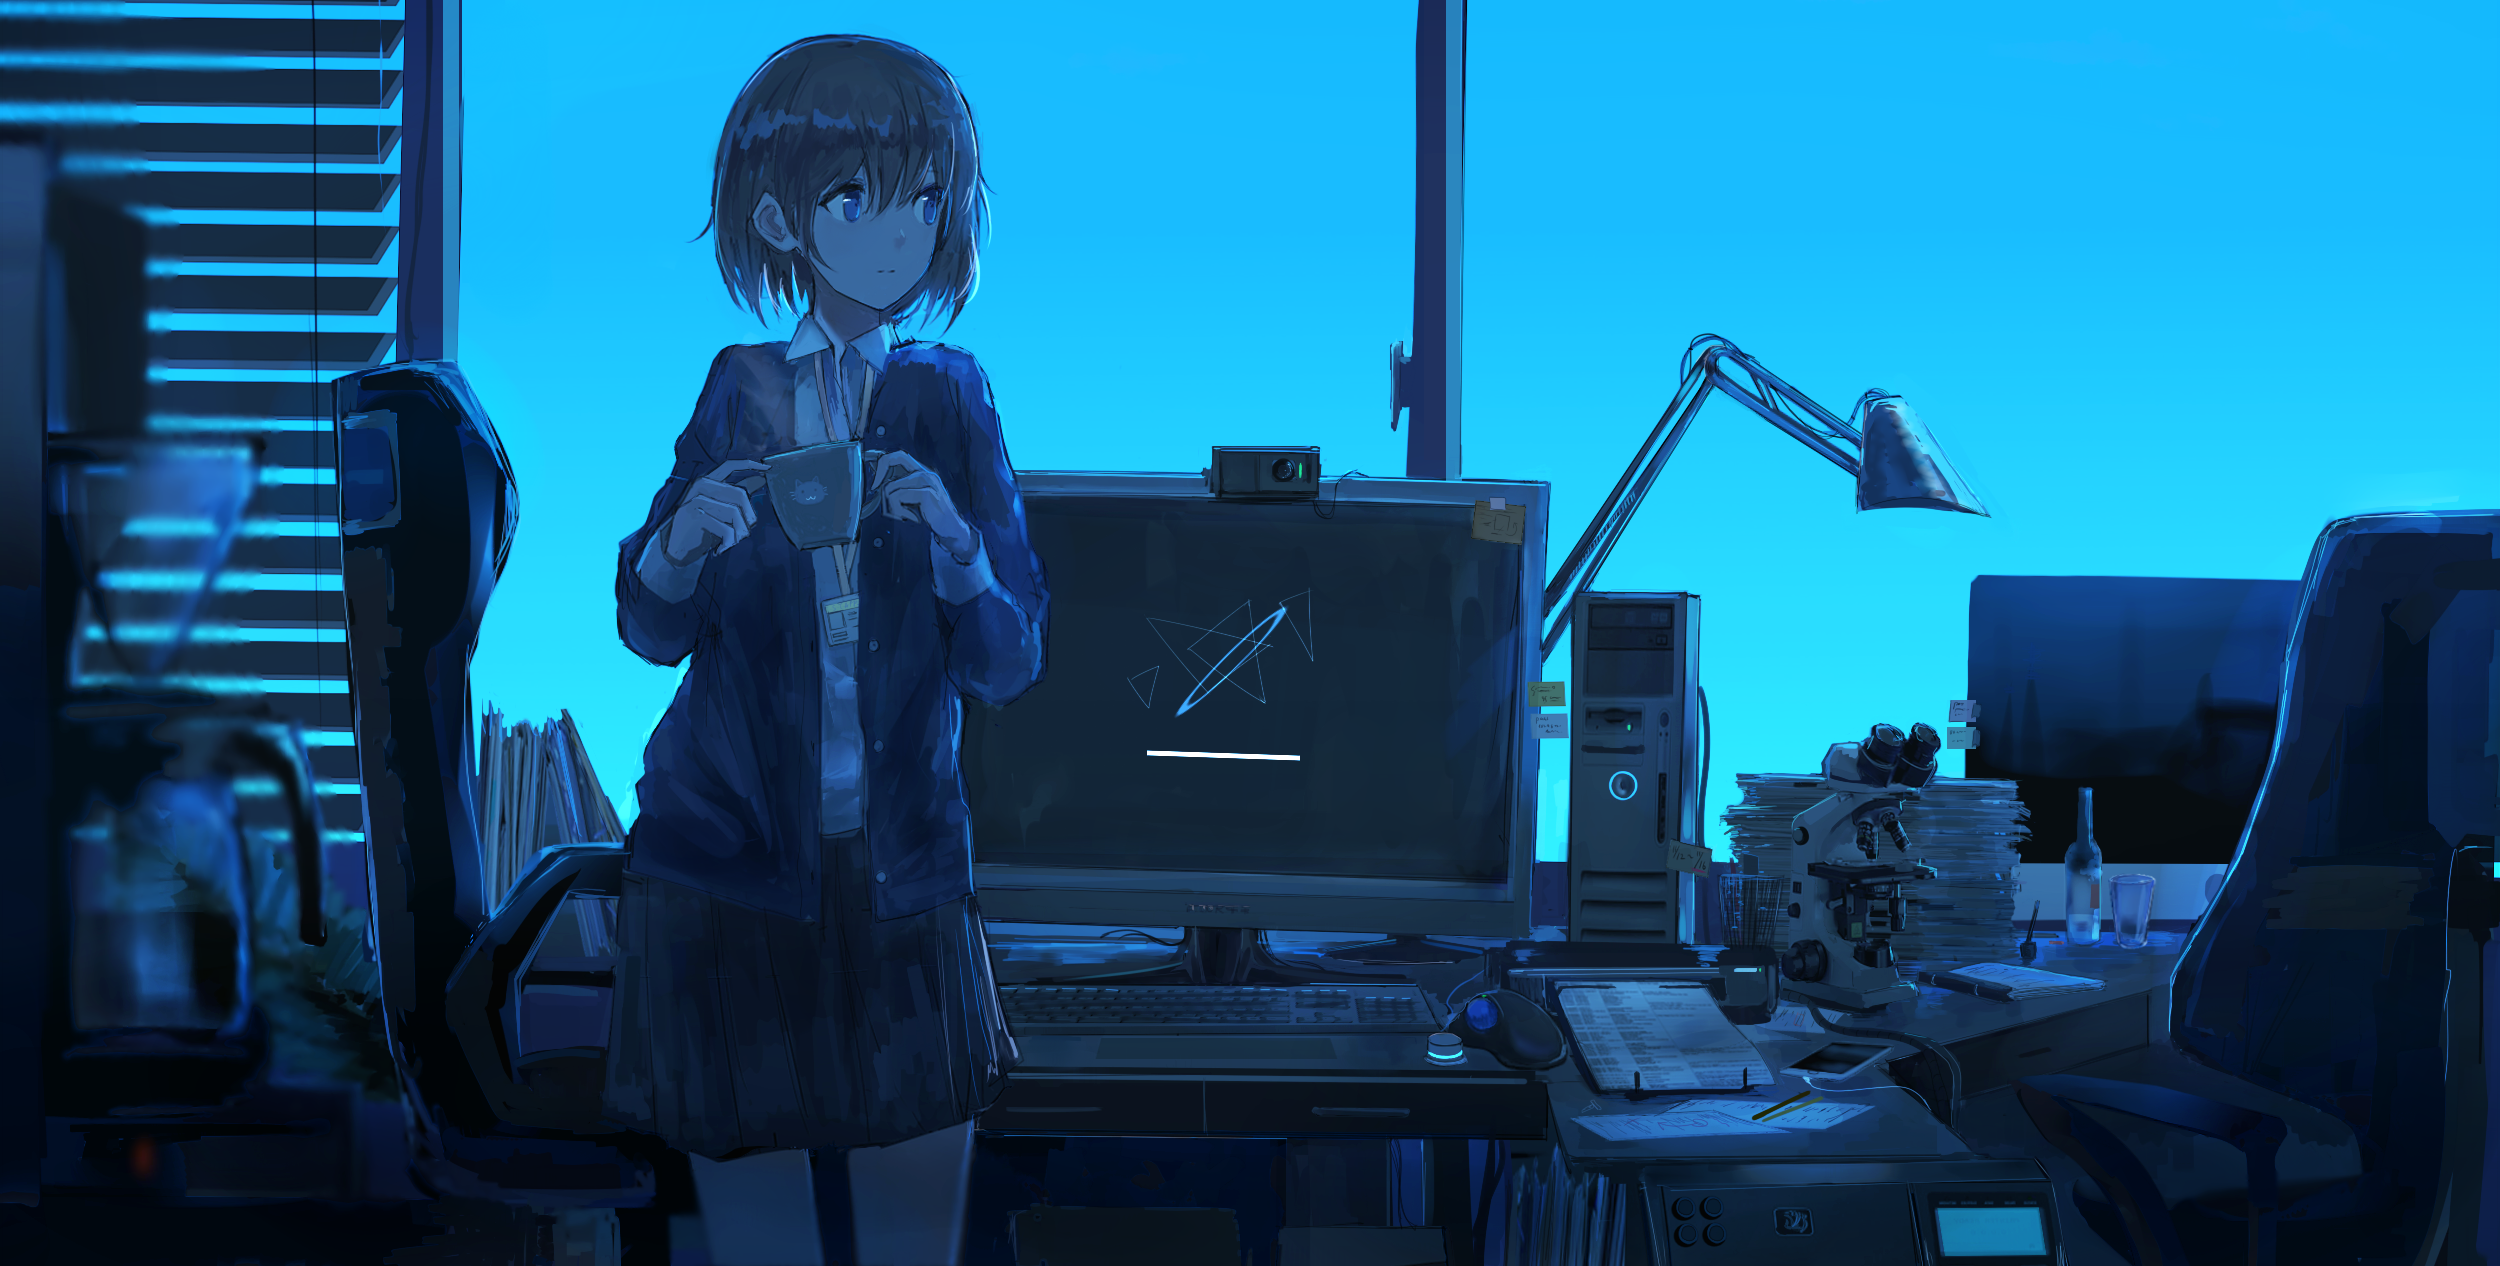 Anime 2500x1266 anime girls office blue cup cyan